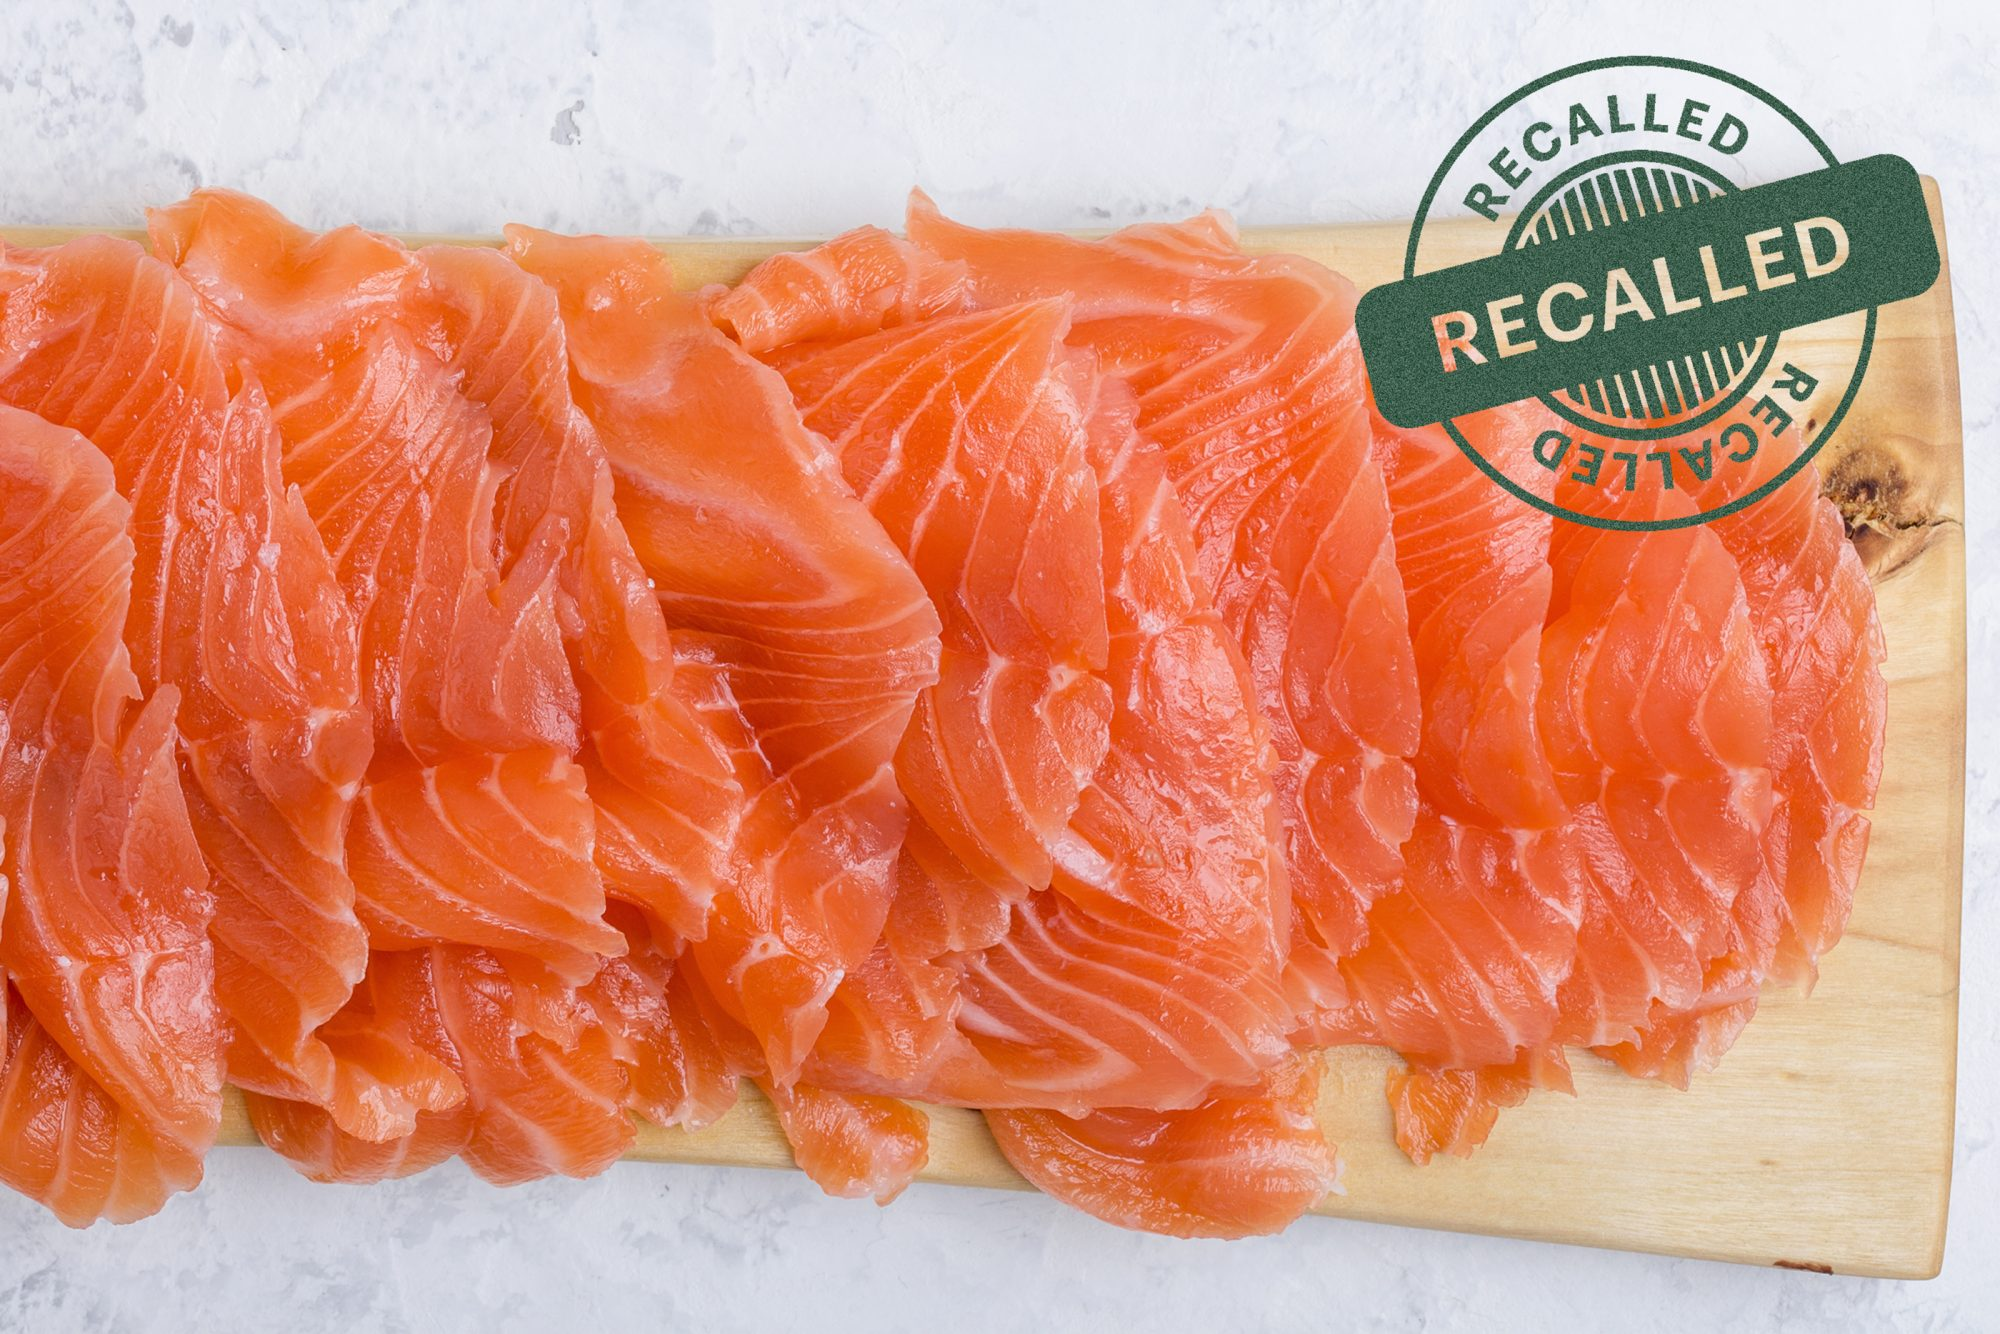 smoked salmon with recall stamp on it